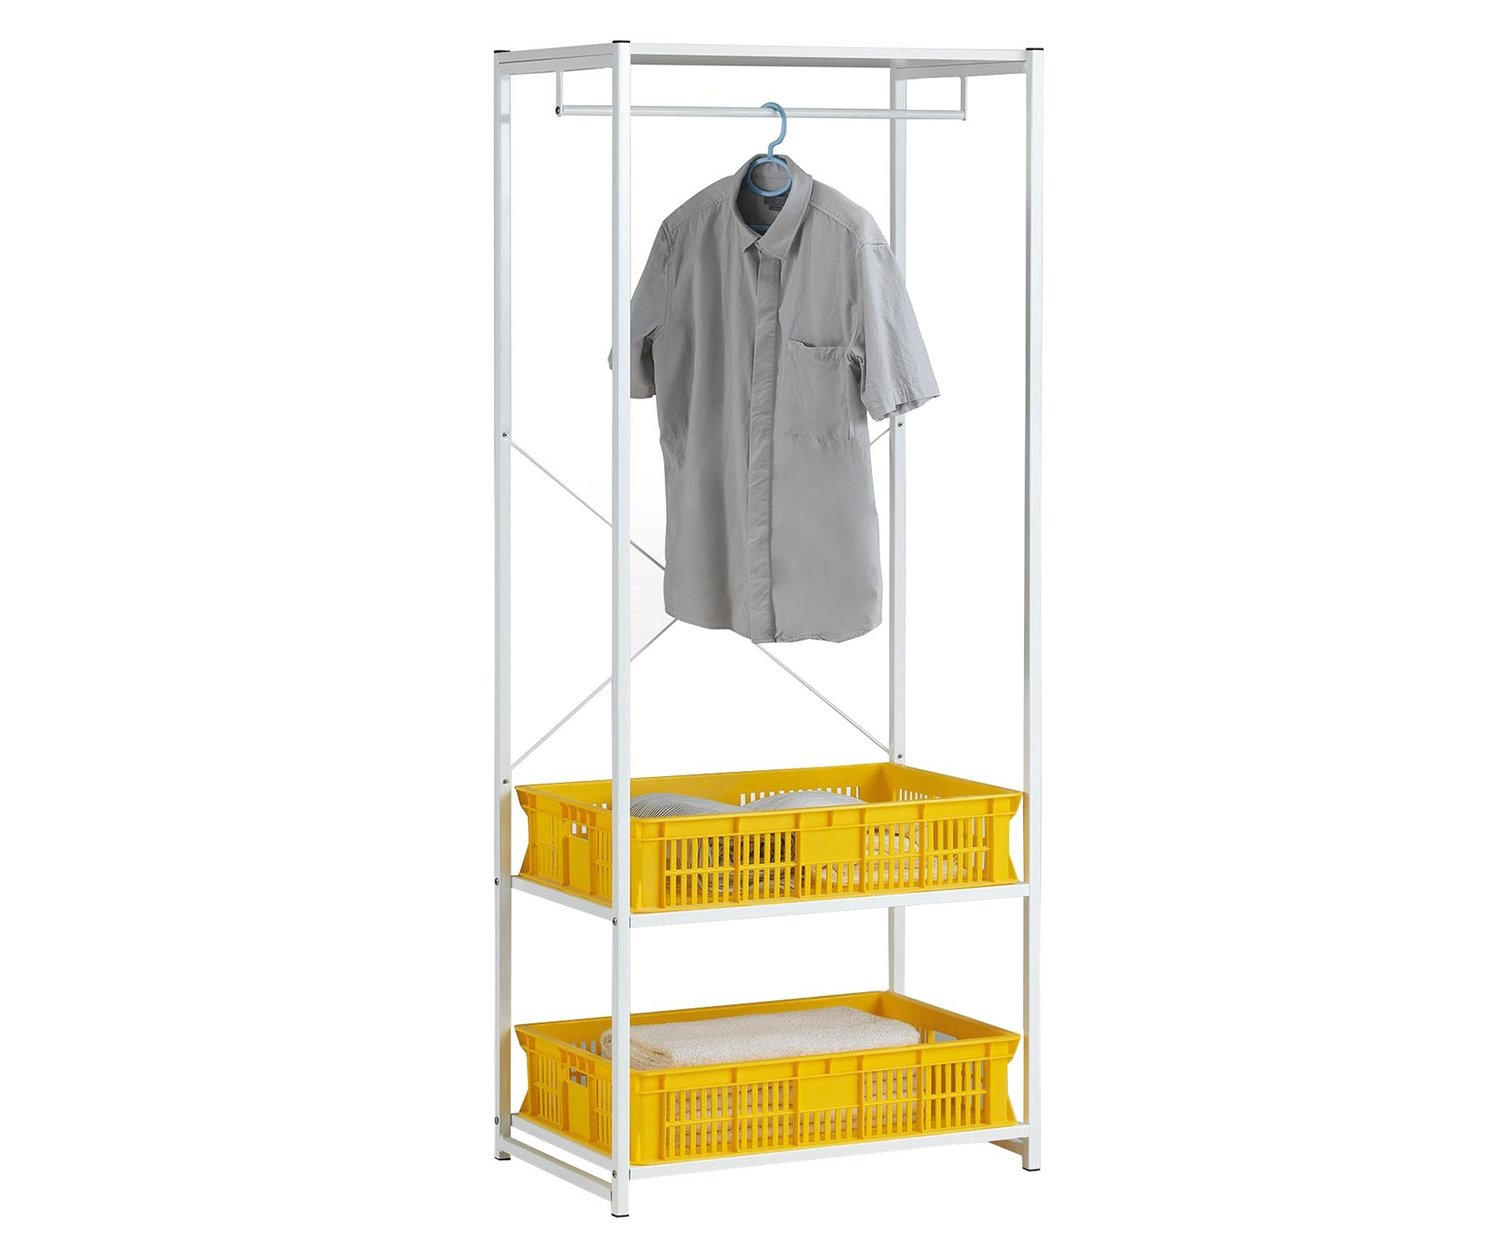 2 Tier Multi Rack & Hanger